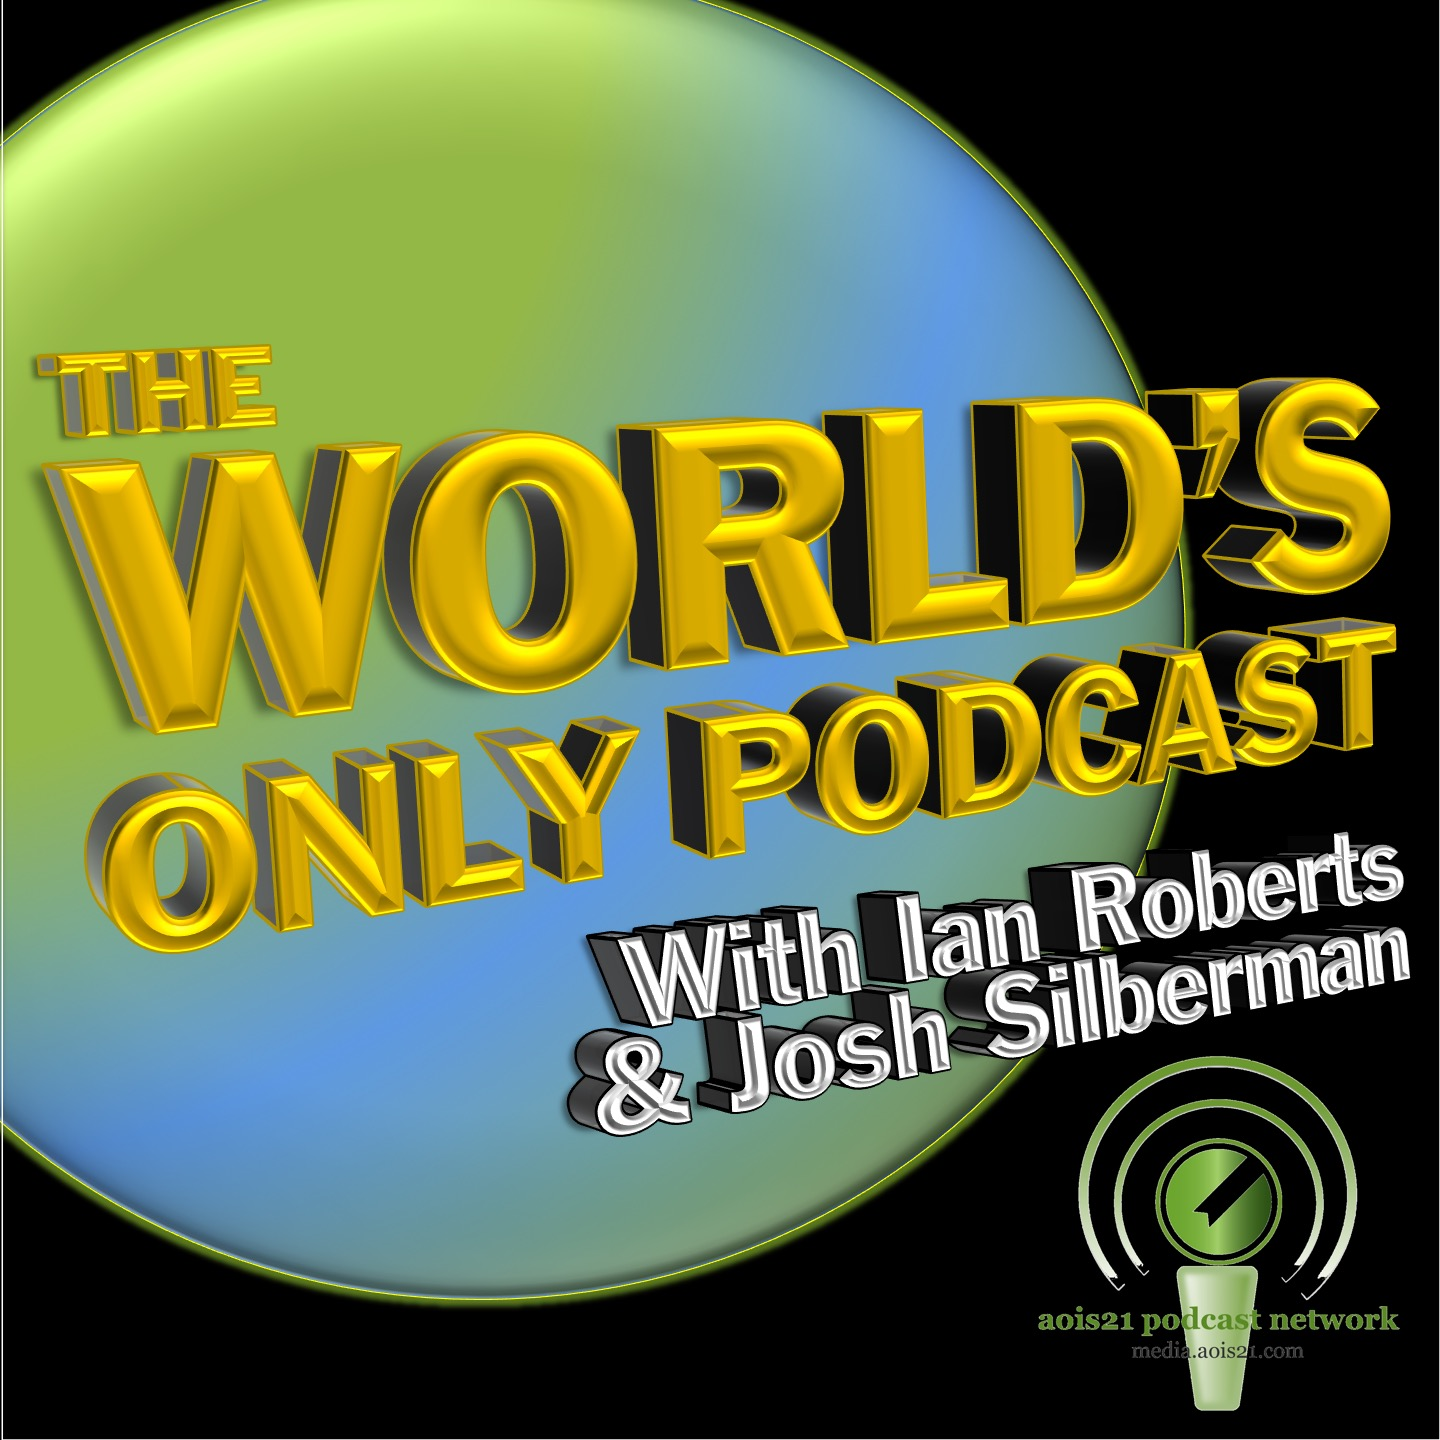 Click Above to listen to 'The World's Only Podcast with Ian Roberts and Joshua Silberman'